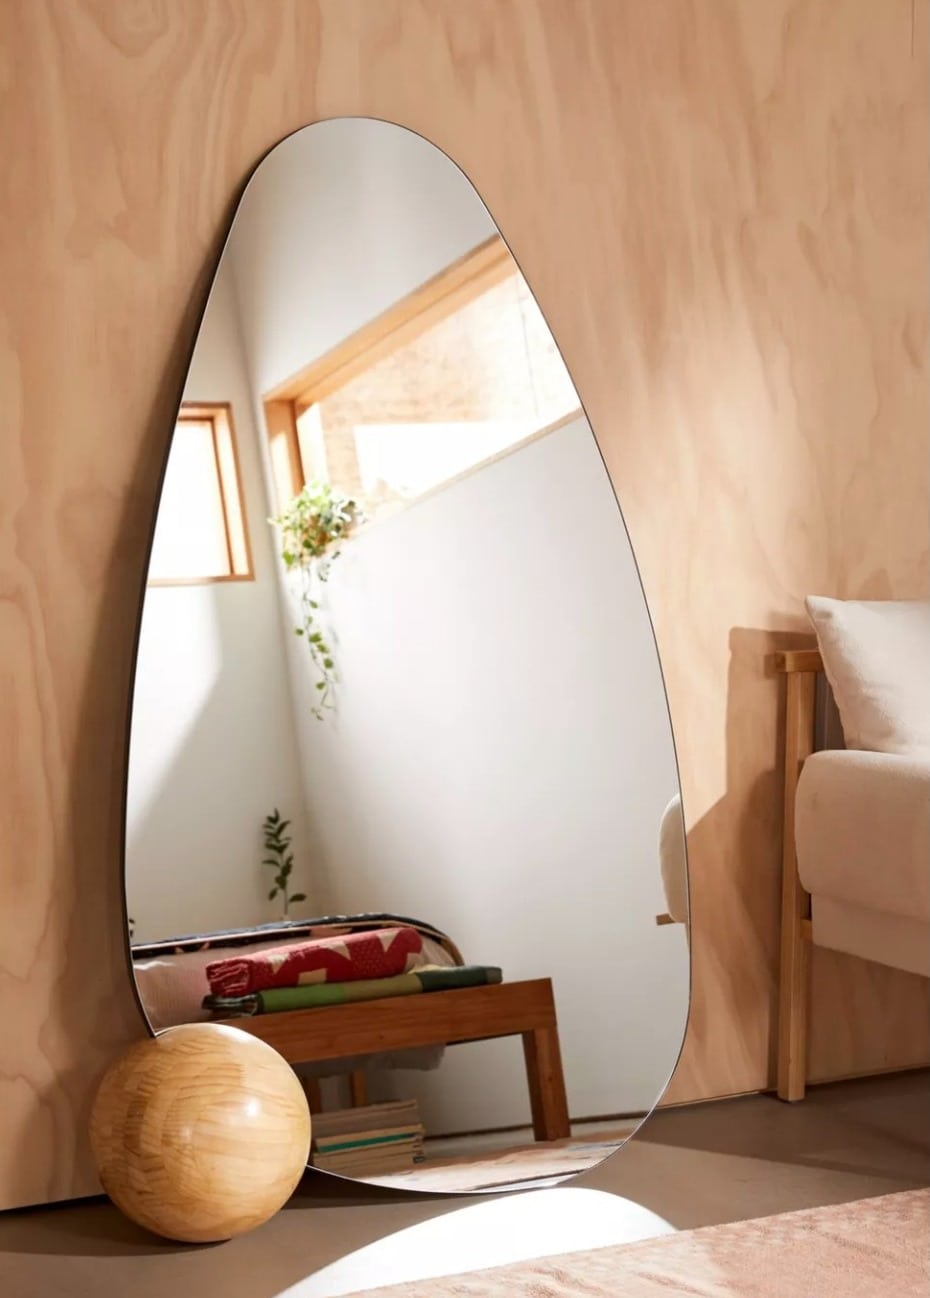 Enlarge Your Space with a Unique Mirror